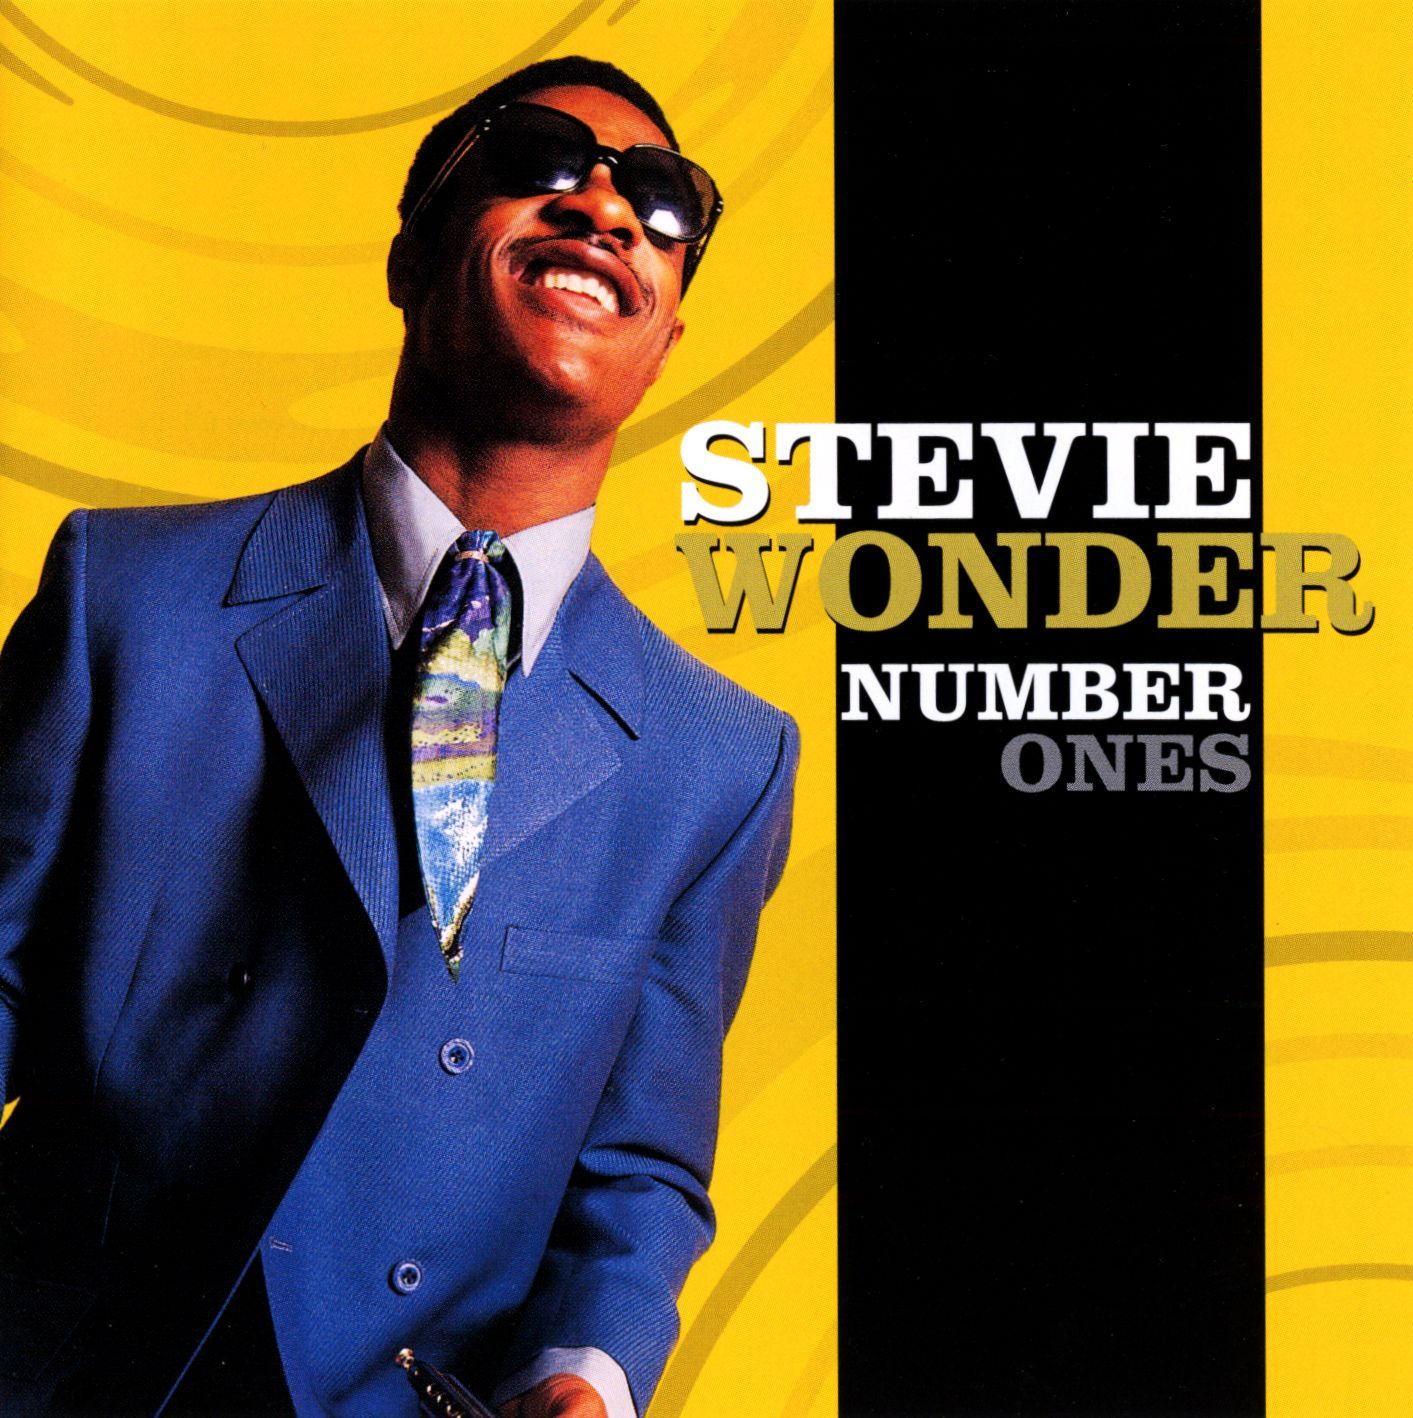 ARTIST OF THE WEEK: Stevie Wonder